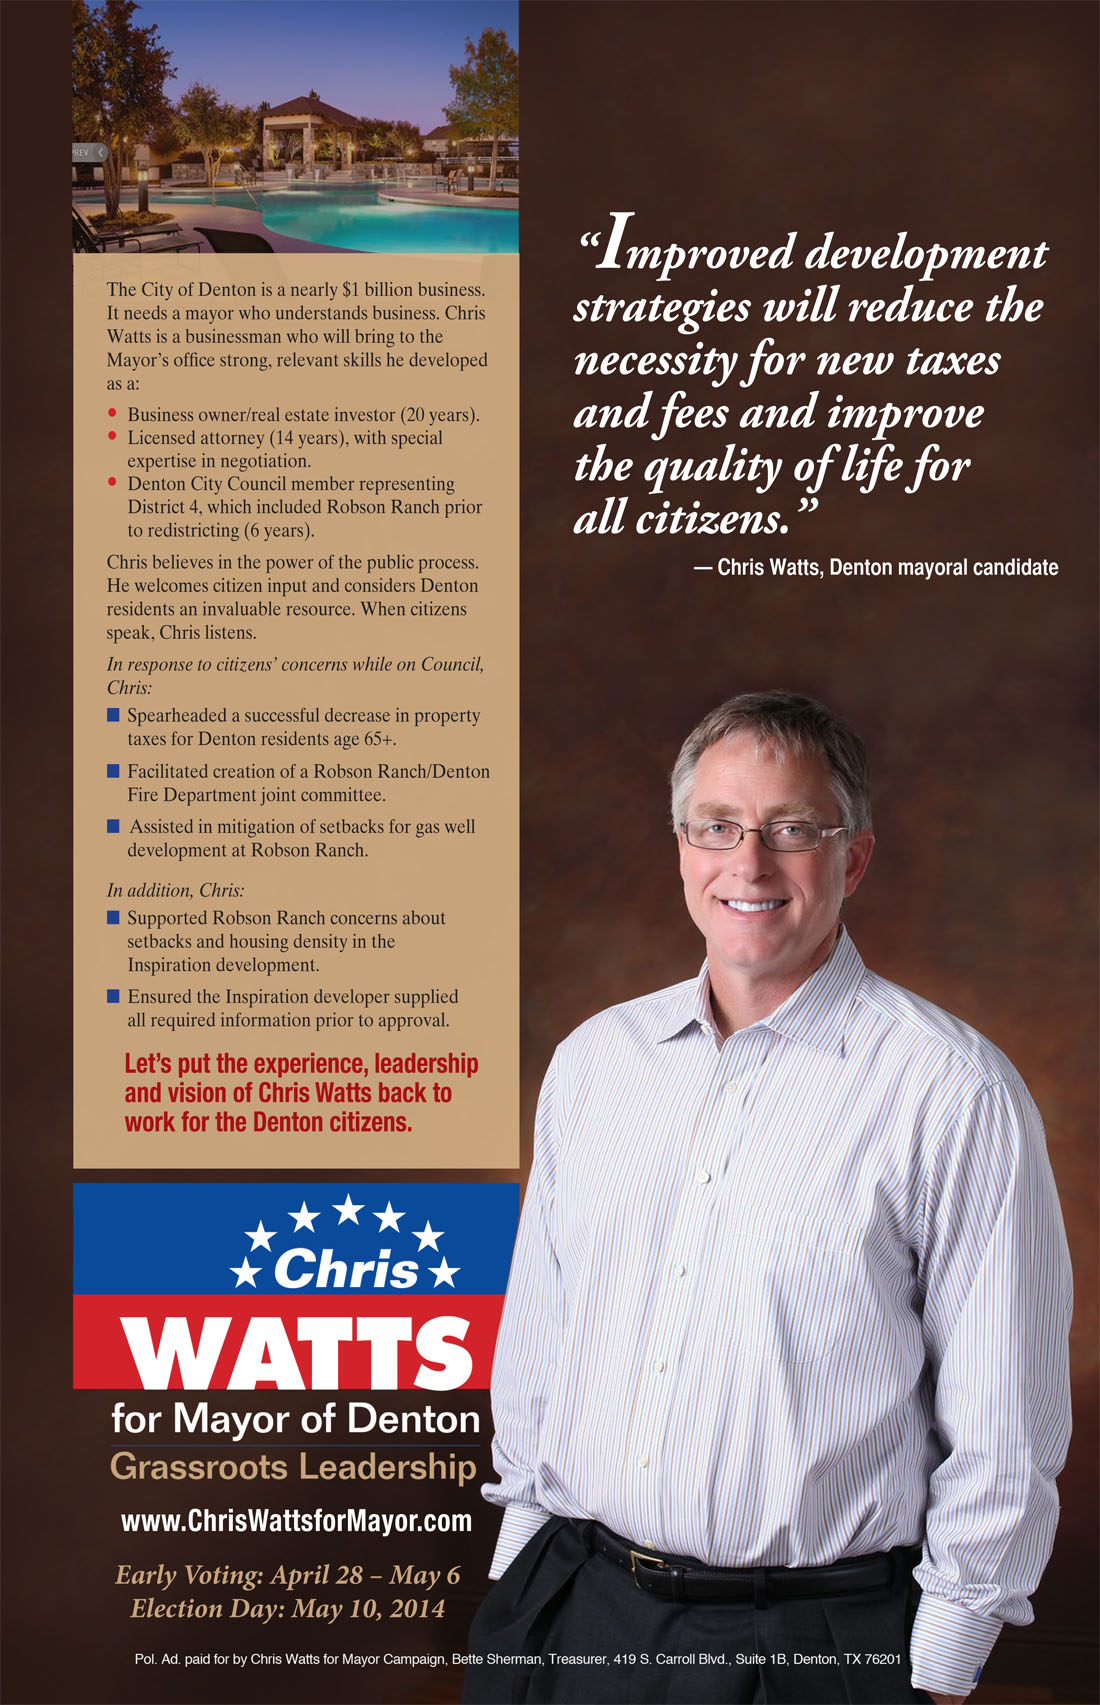 Chris Watts For Mayor of Denton, Political Campaign